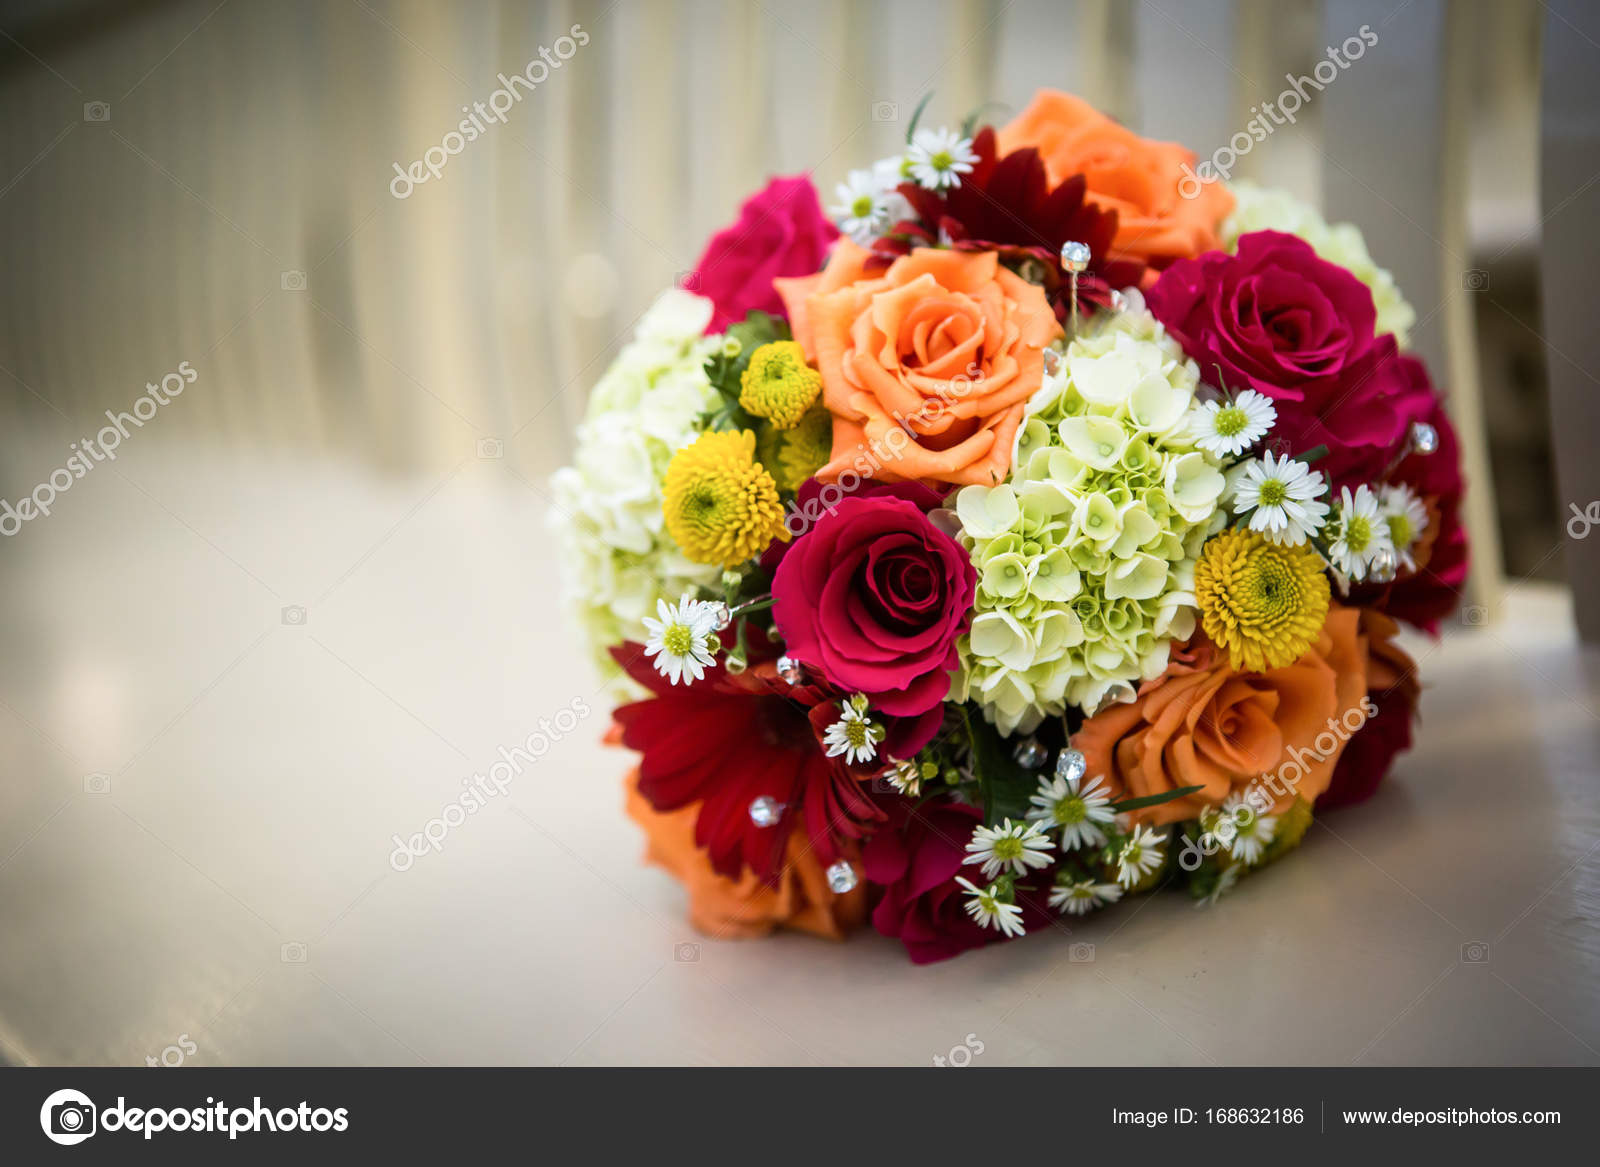 Orange yellow white wedding bouquet stock photo steve beautiful orange red and yellow bouquet loaded with daisies and roses on a bench with shallow depth of field photo by stevesa3studios mightylinksfo